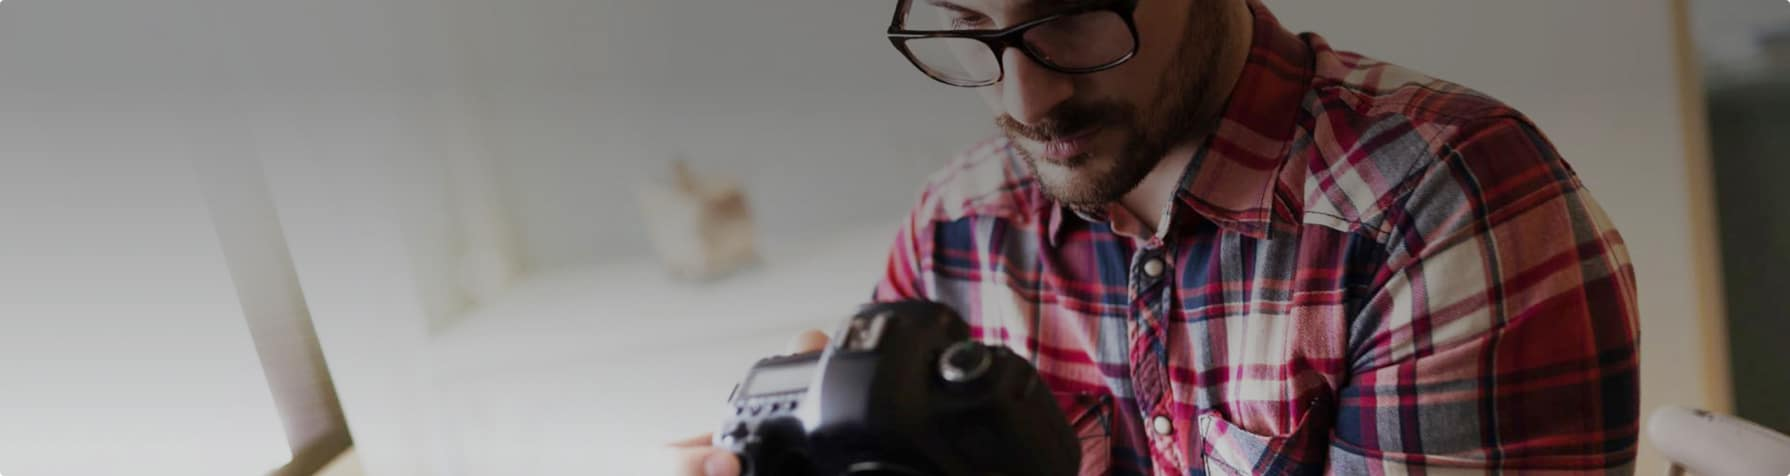 Photography Business Insurance Cost - Desktop